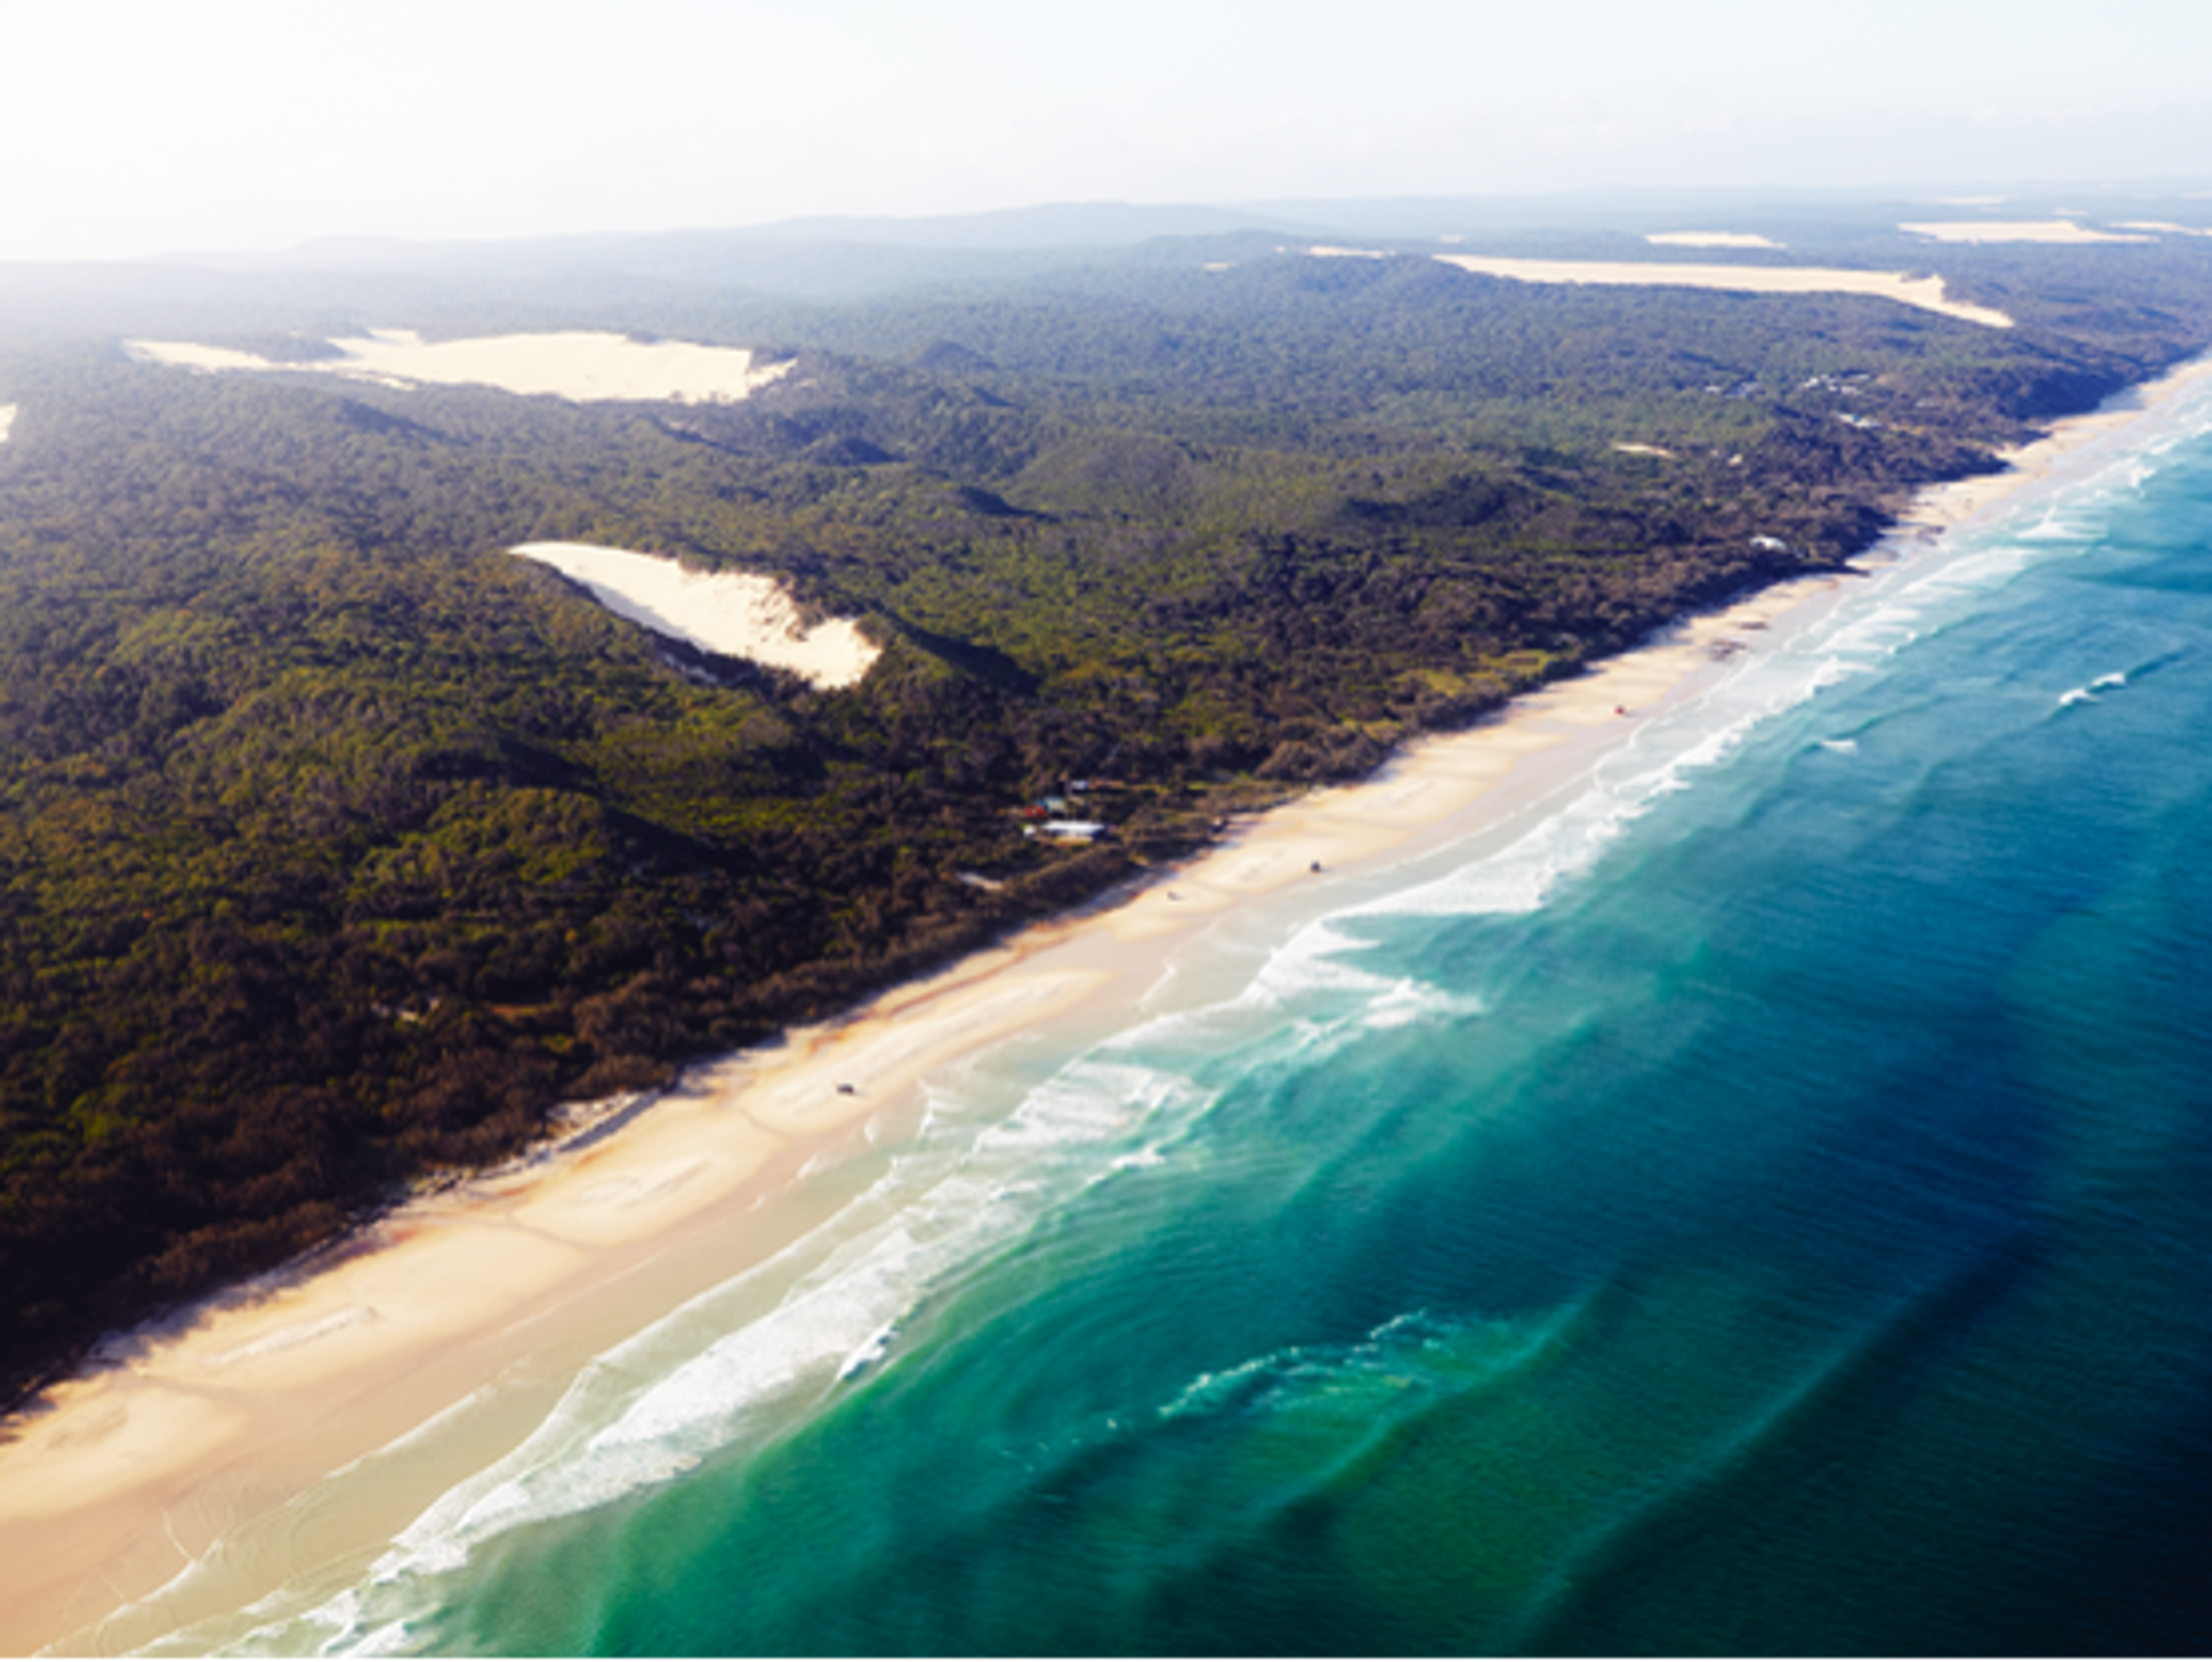 Fraser Island stretches over 76 miles